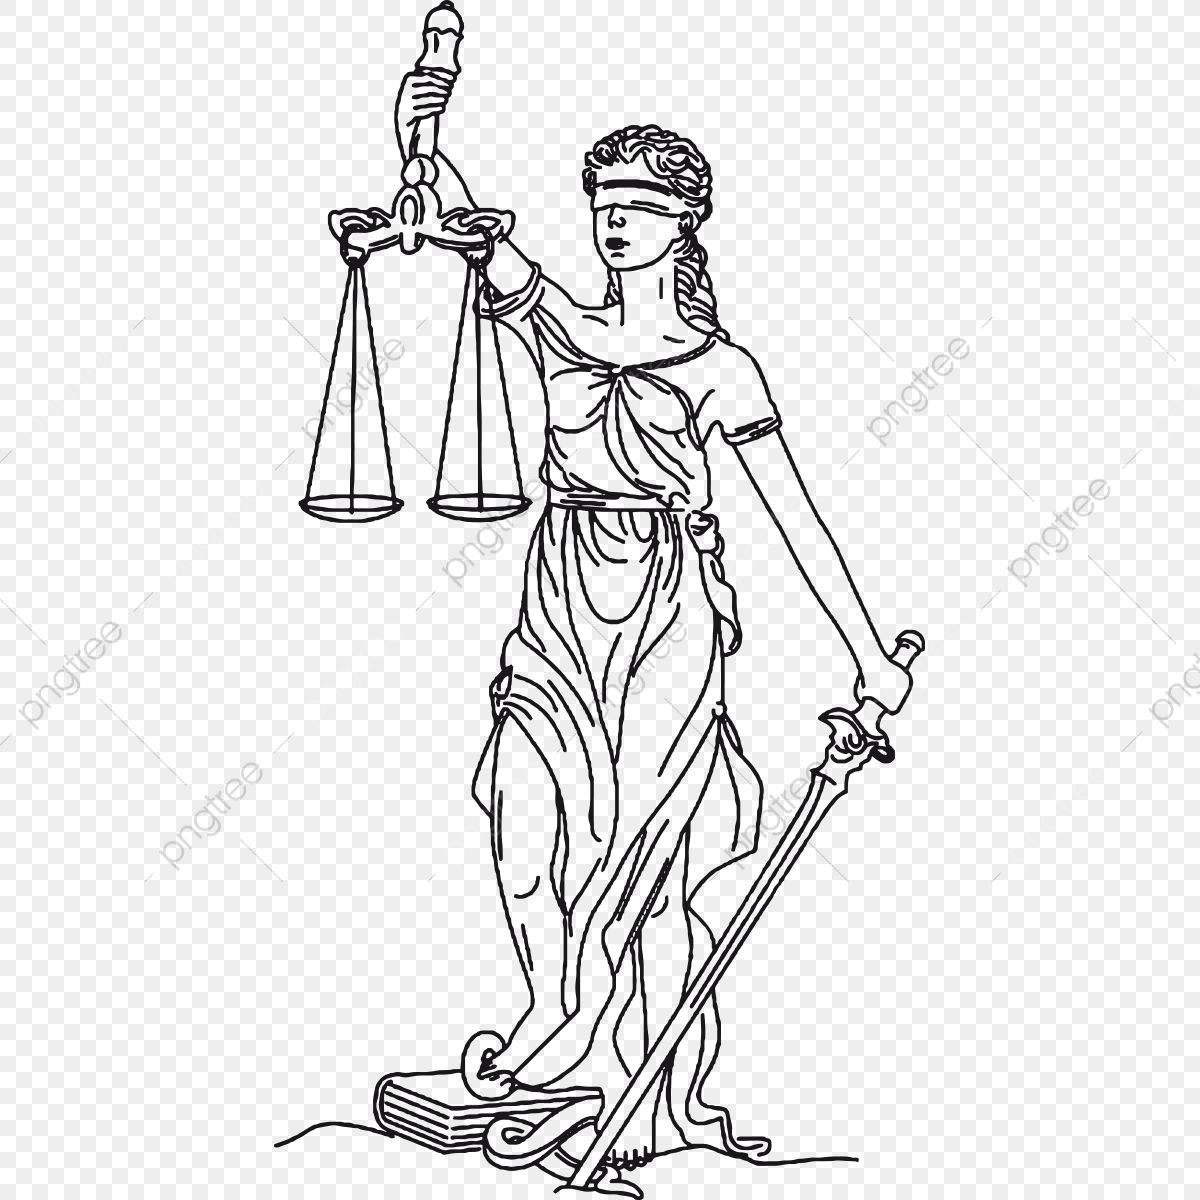 Lady Justice Eps Justice Png And Vector With Transparent Background For Free Download Dama De La Justicia Balanza De La Justicia Simbolo De La Justicia